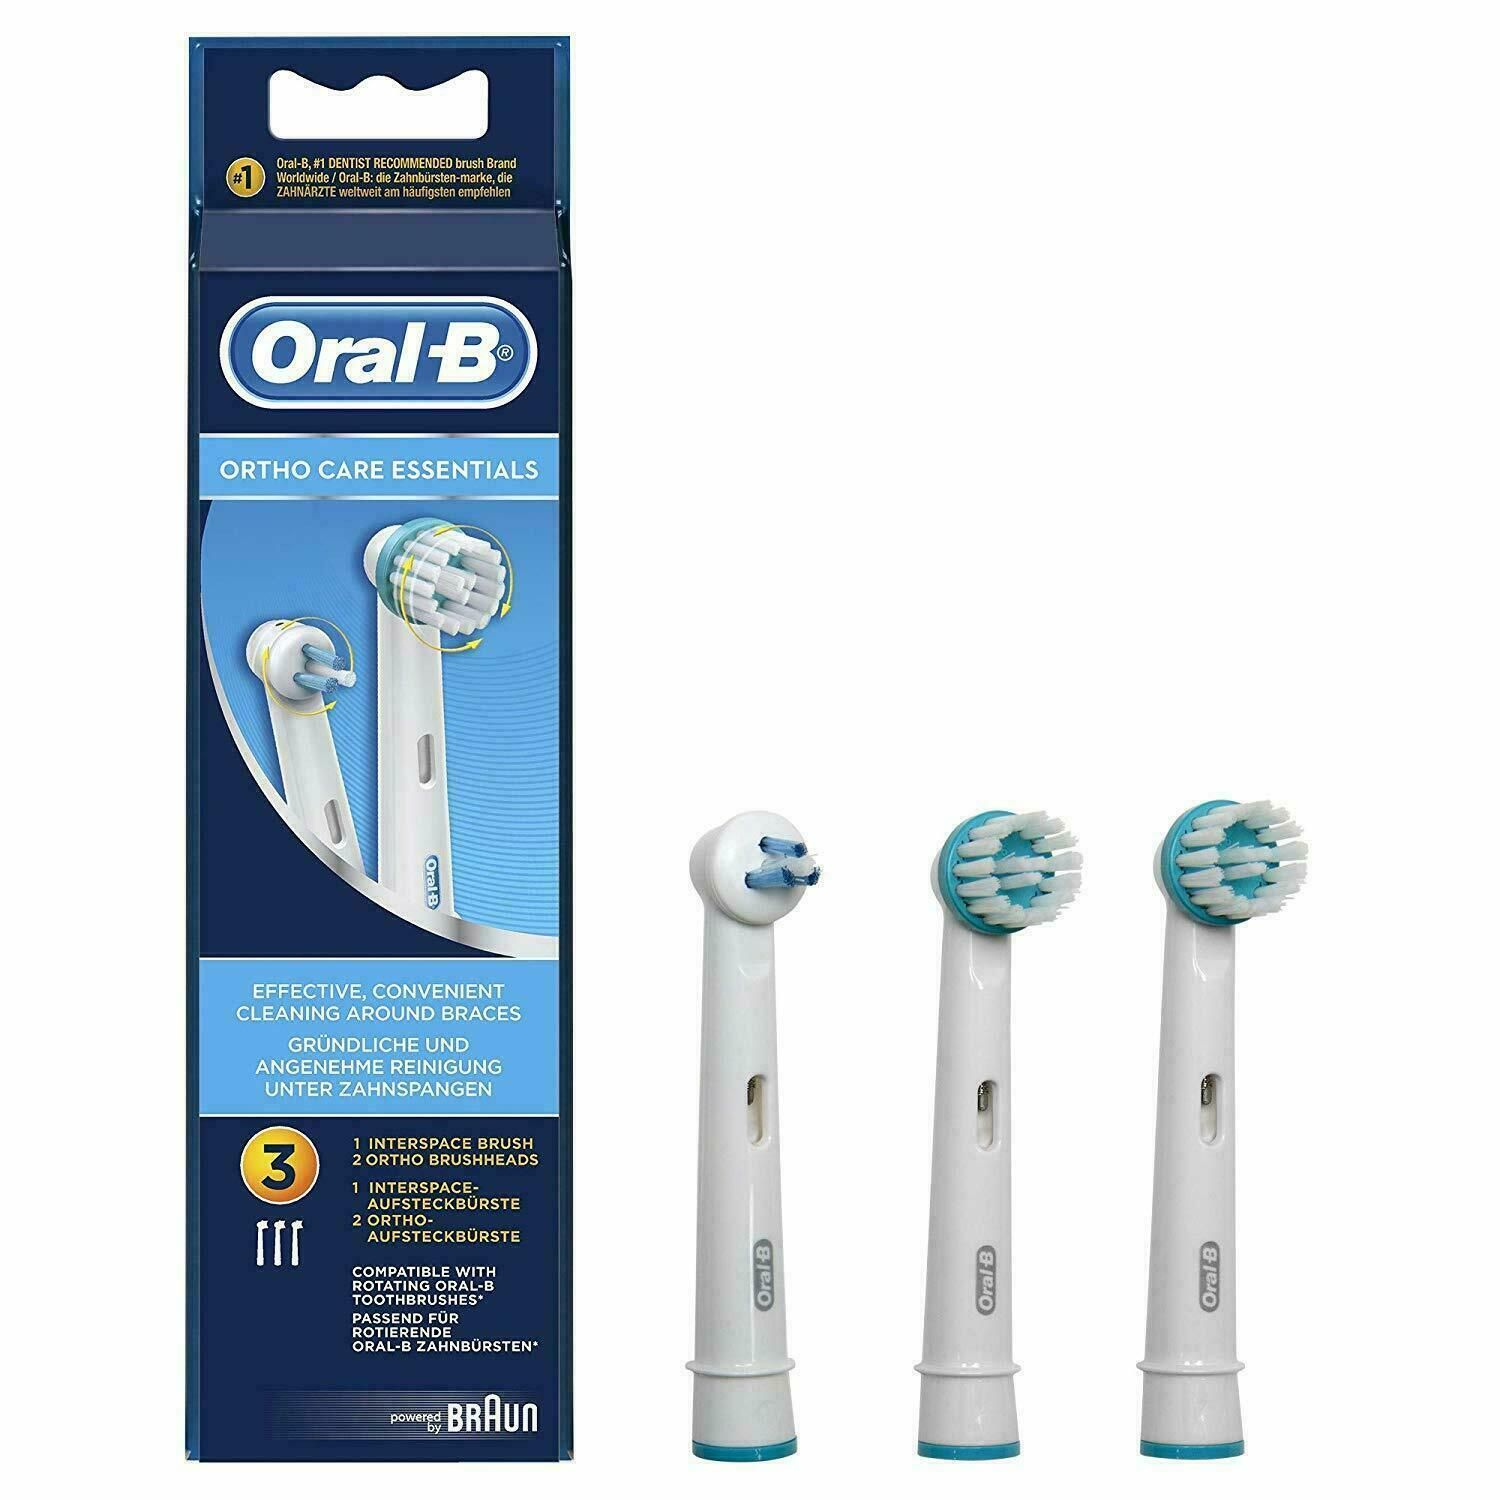 Oral-B Ortho Care Essentials Replacement Toothbrush Heads for Braces, Count 3